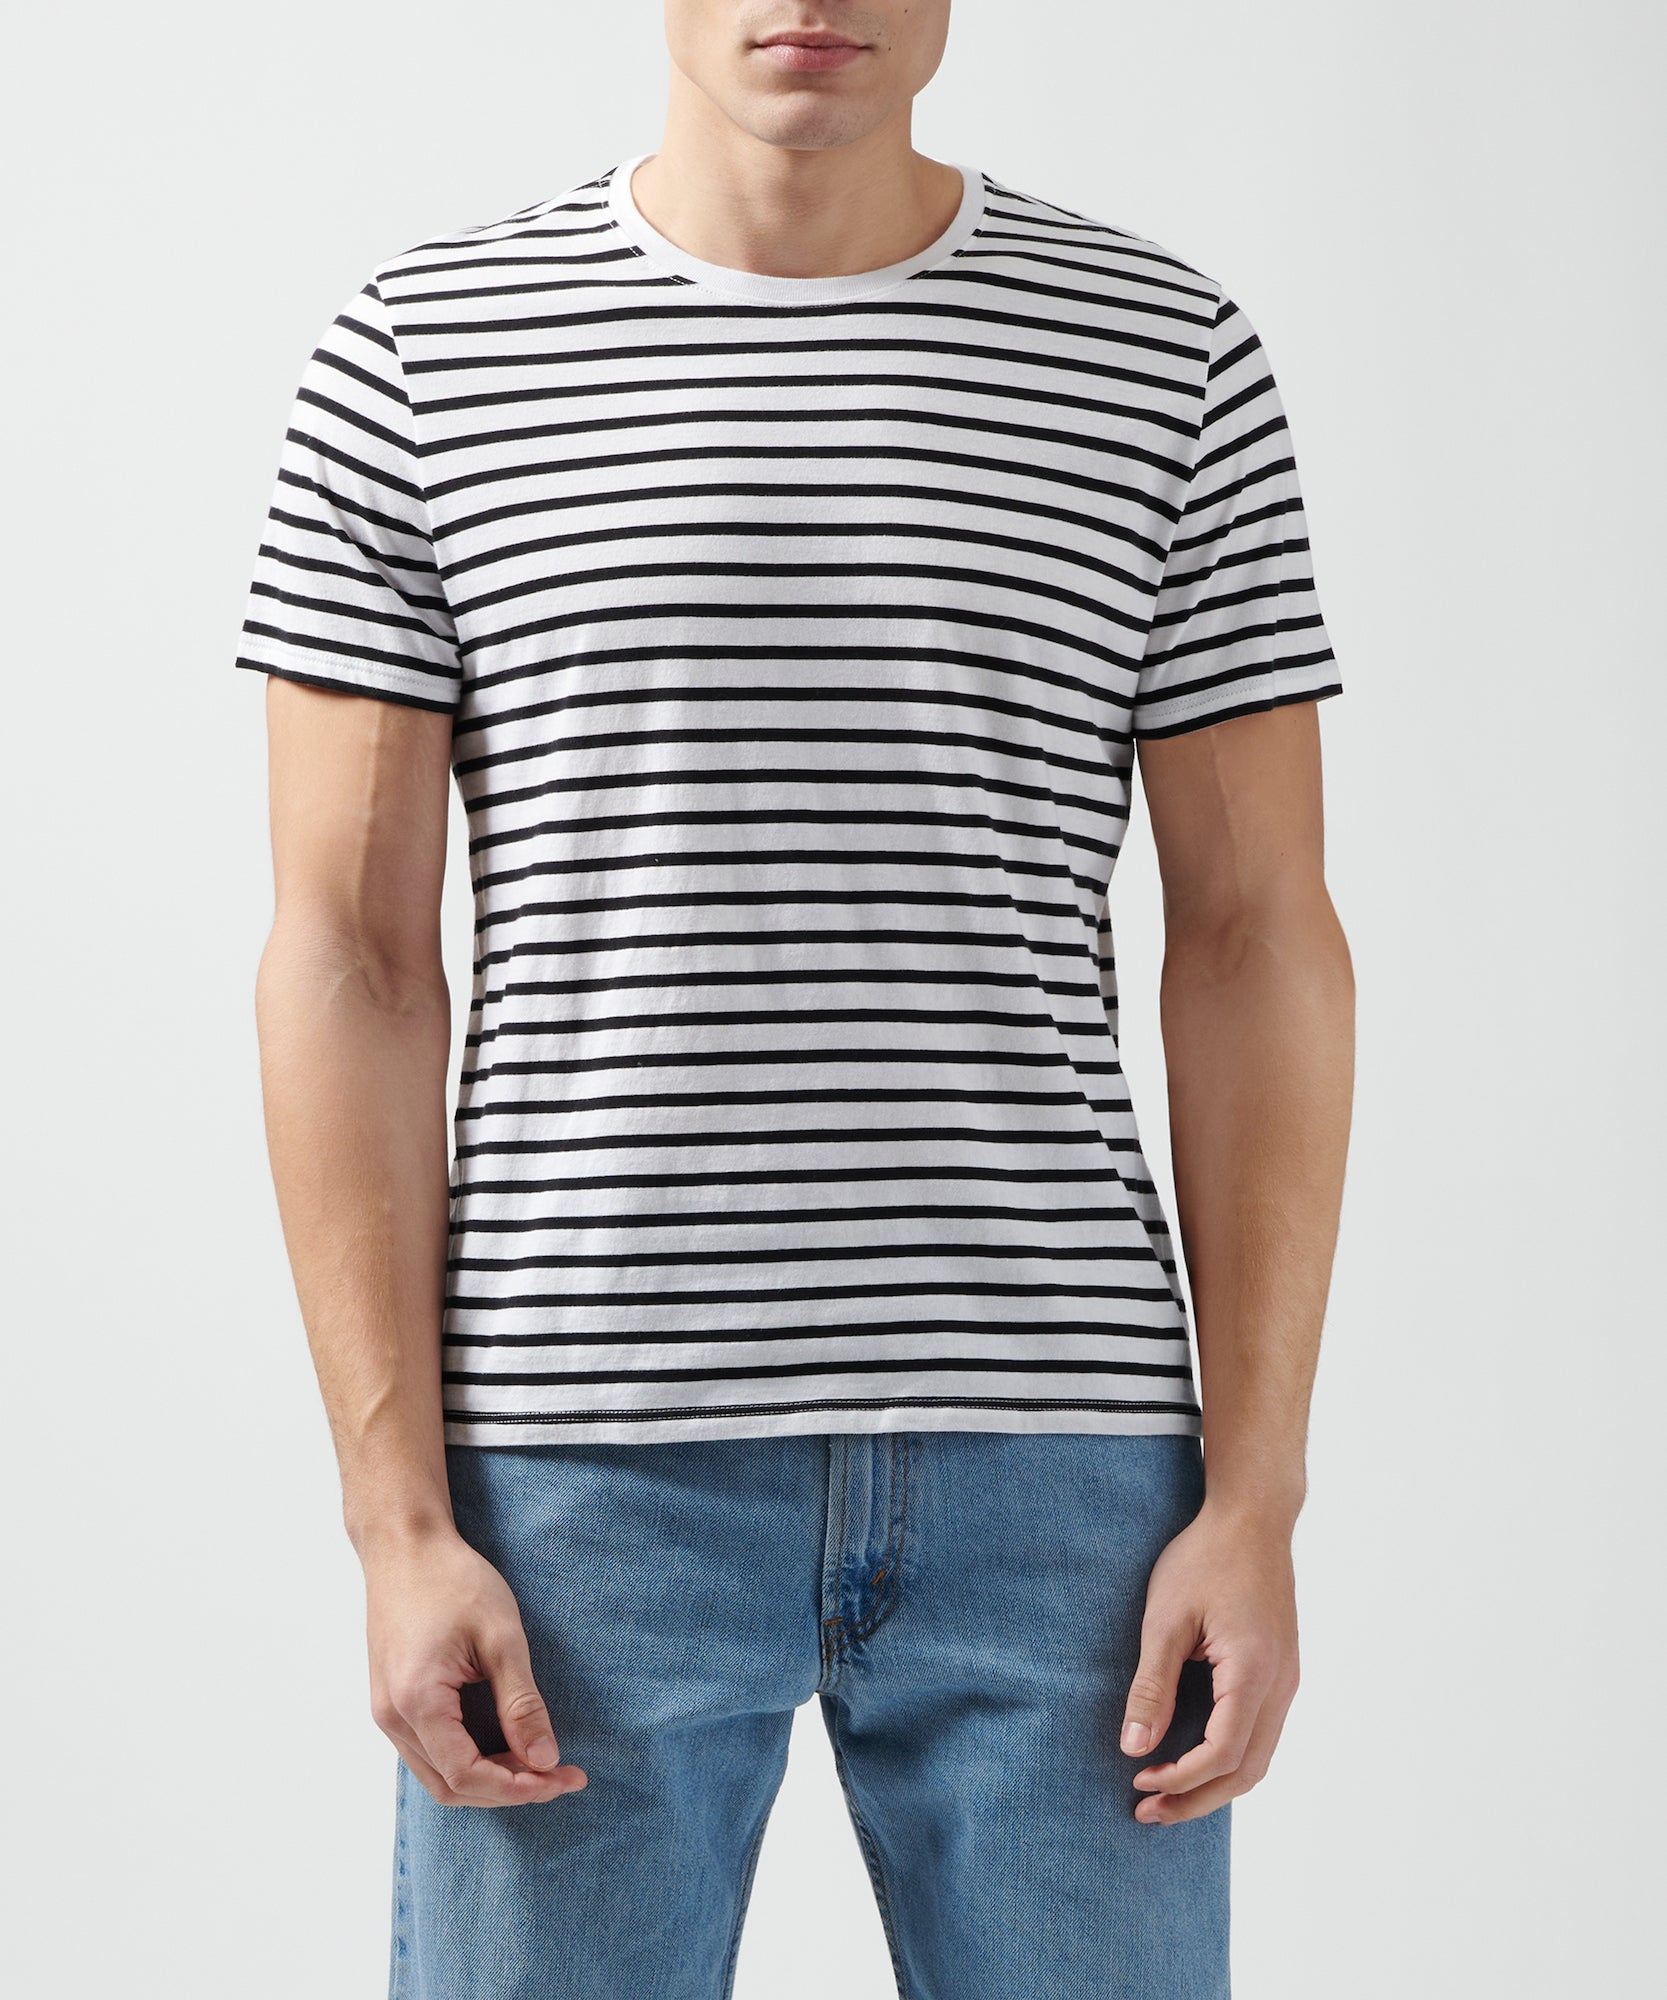 Black and White Classic Jersey Striped Crew Neck Tee - Men's Luxury Tee by ATM Anthony Thomas Melillo